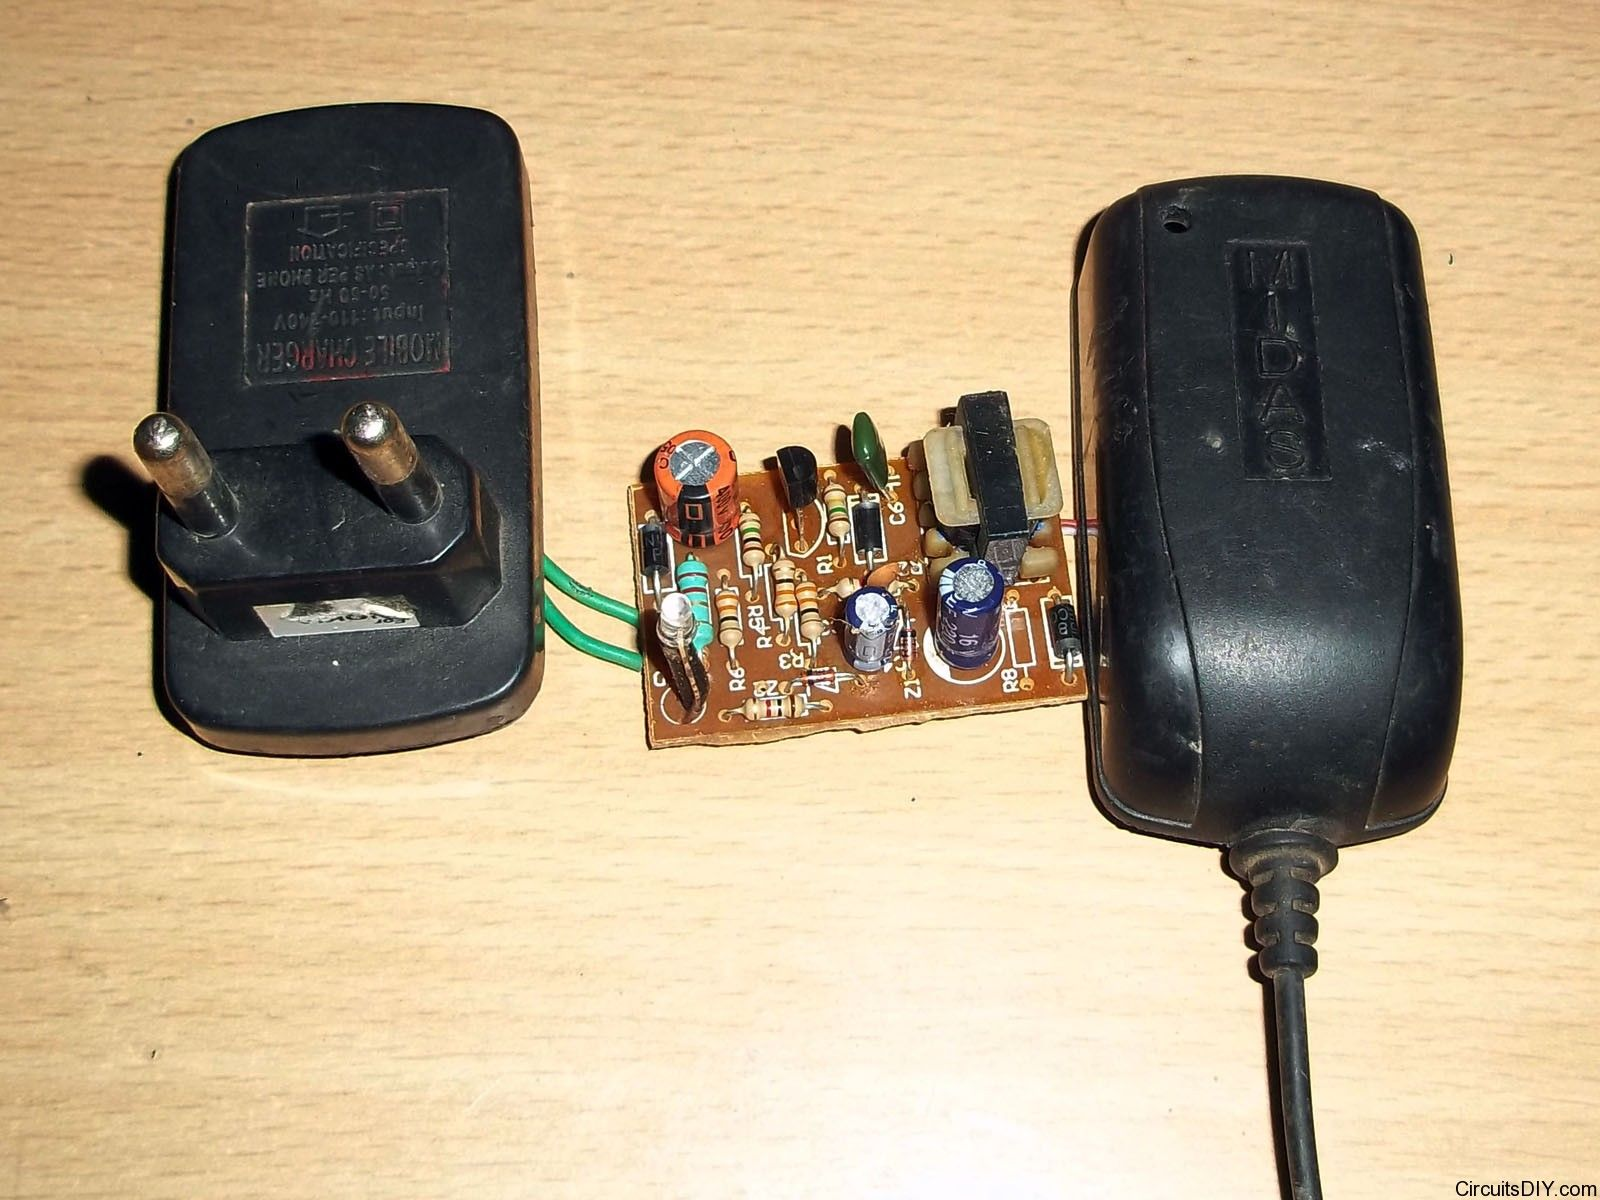 So How To Repair Mobile Charger Circuits Here You Can Find Sg3524 Inverter Circuit Diagram Http Wwwseekiccom Circuitdiagram Detailed Repairing Tips It Covers Fault Detection And Replacing Components